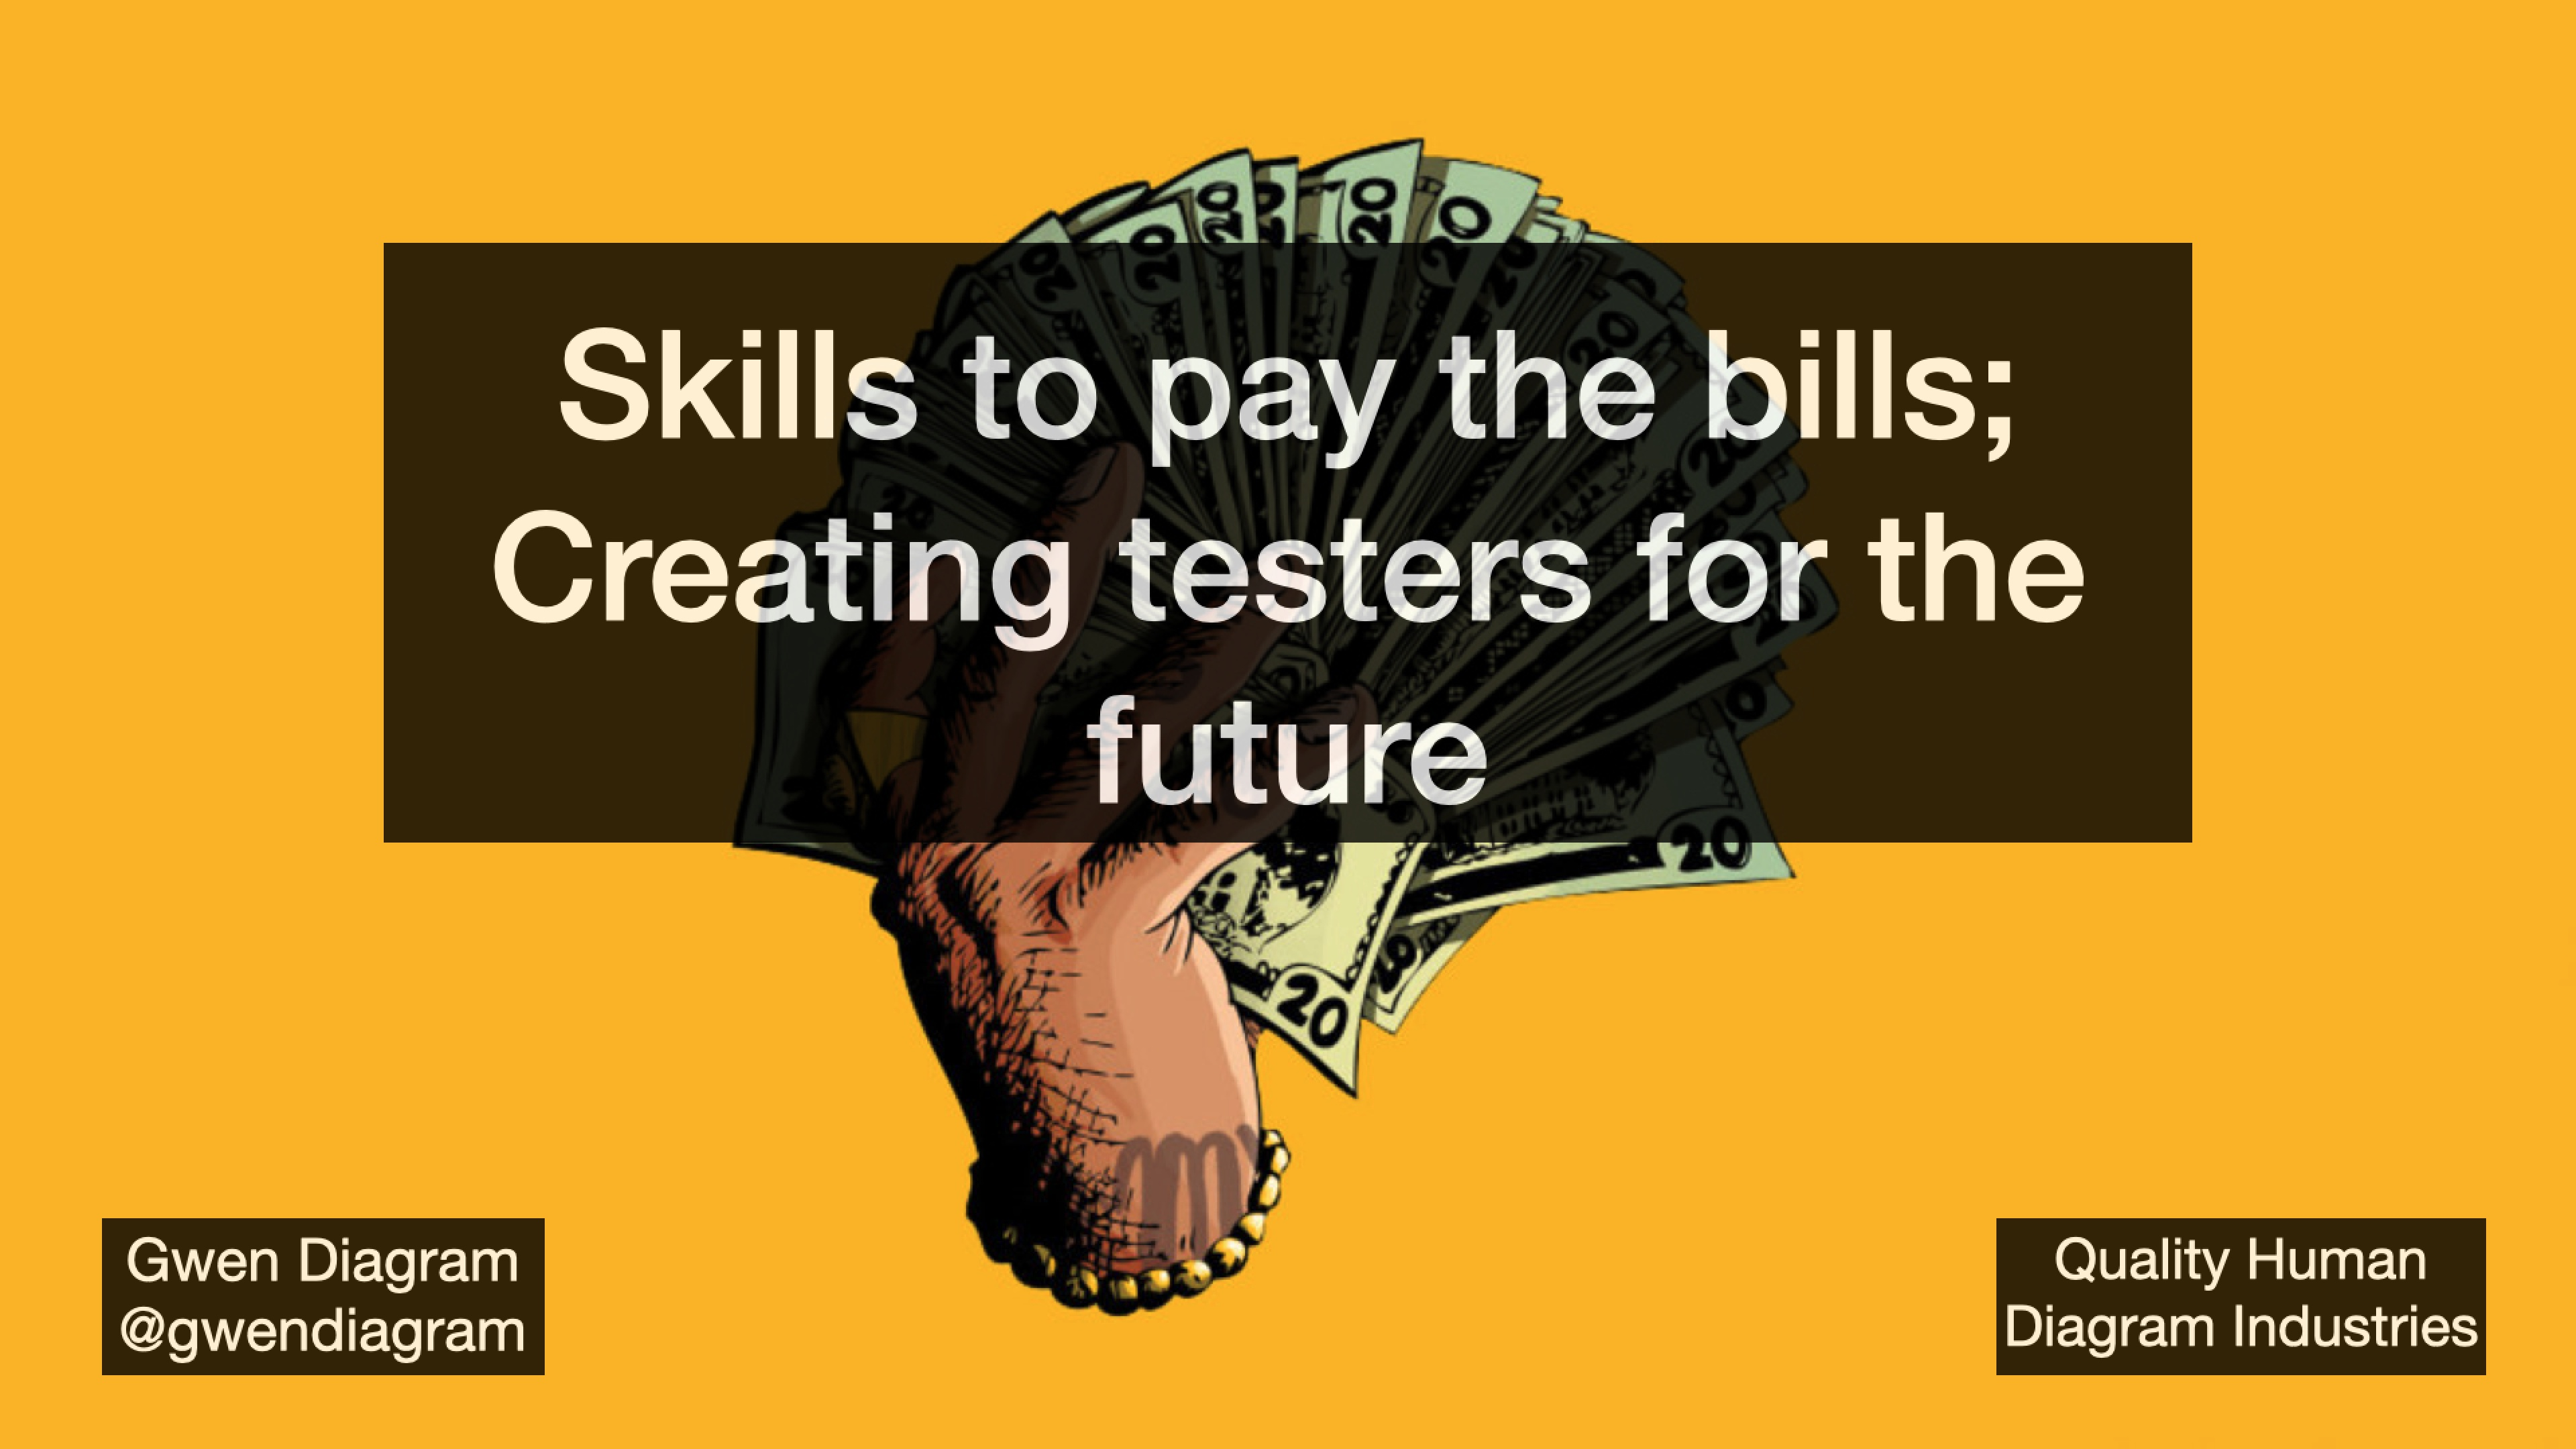 Skills to pay the bills! Creating testers for the future with Gwen Diagram